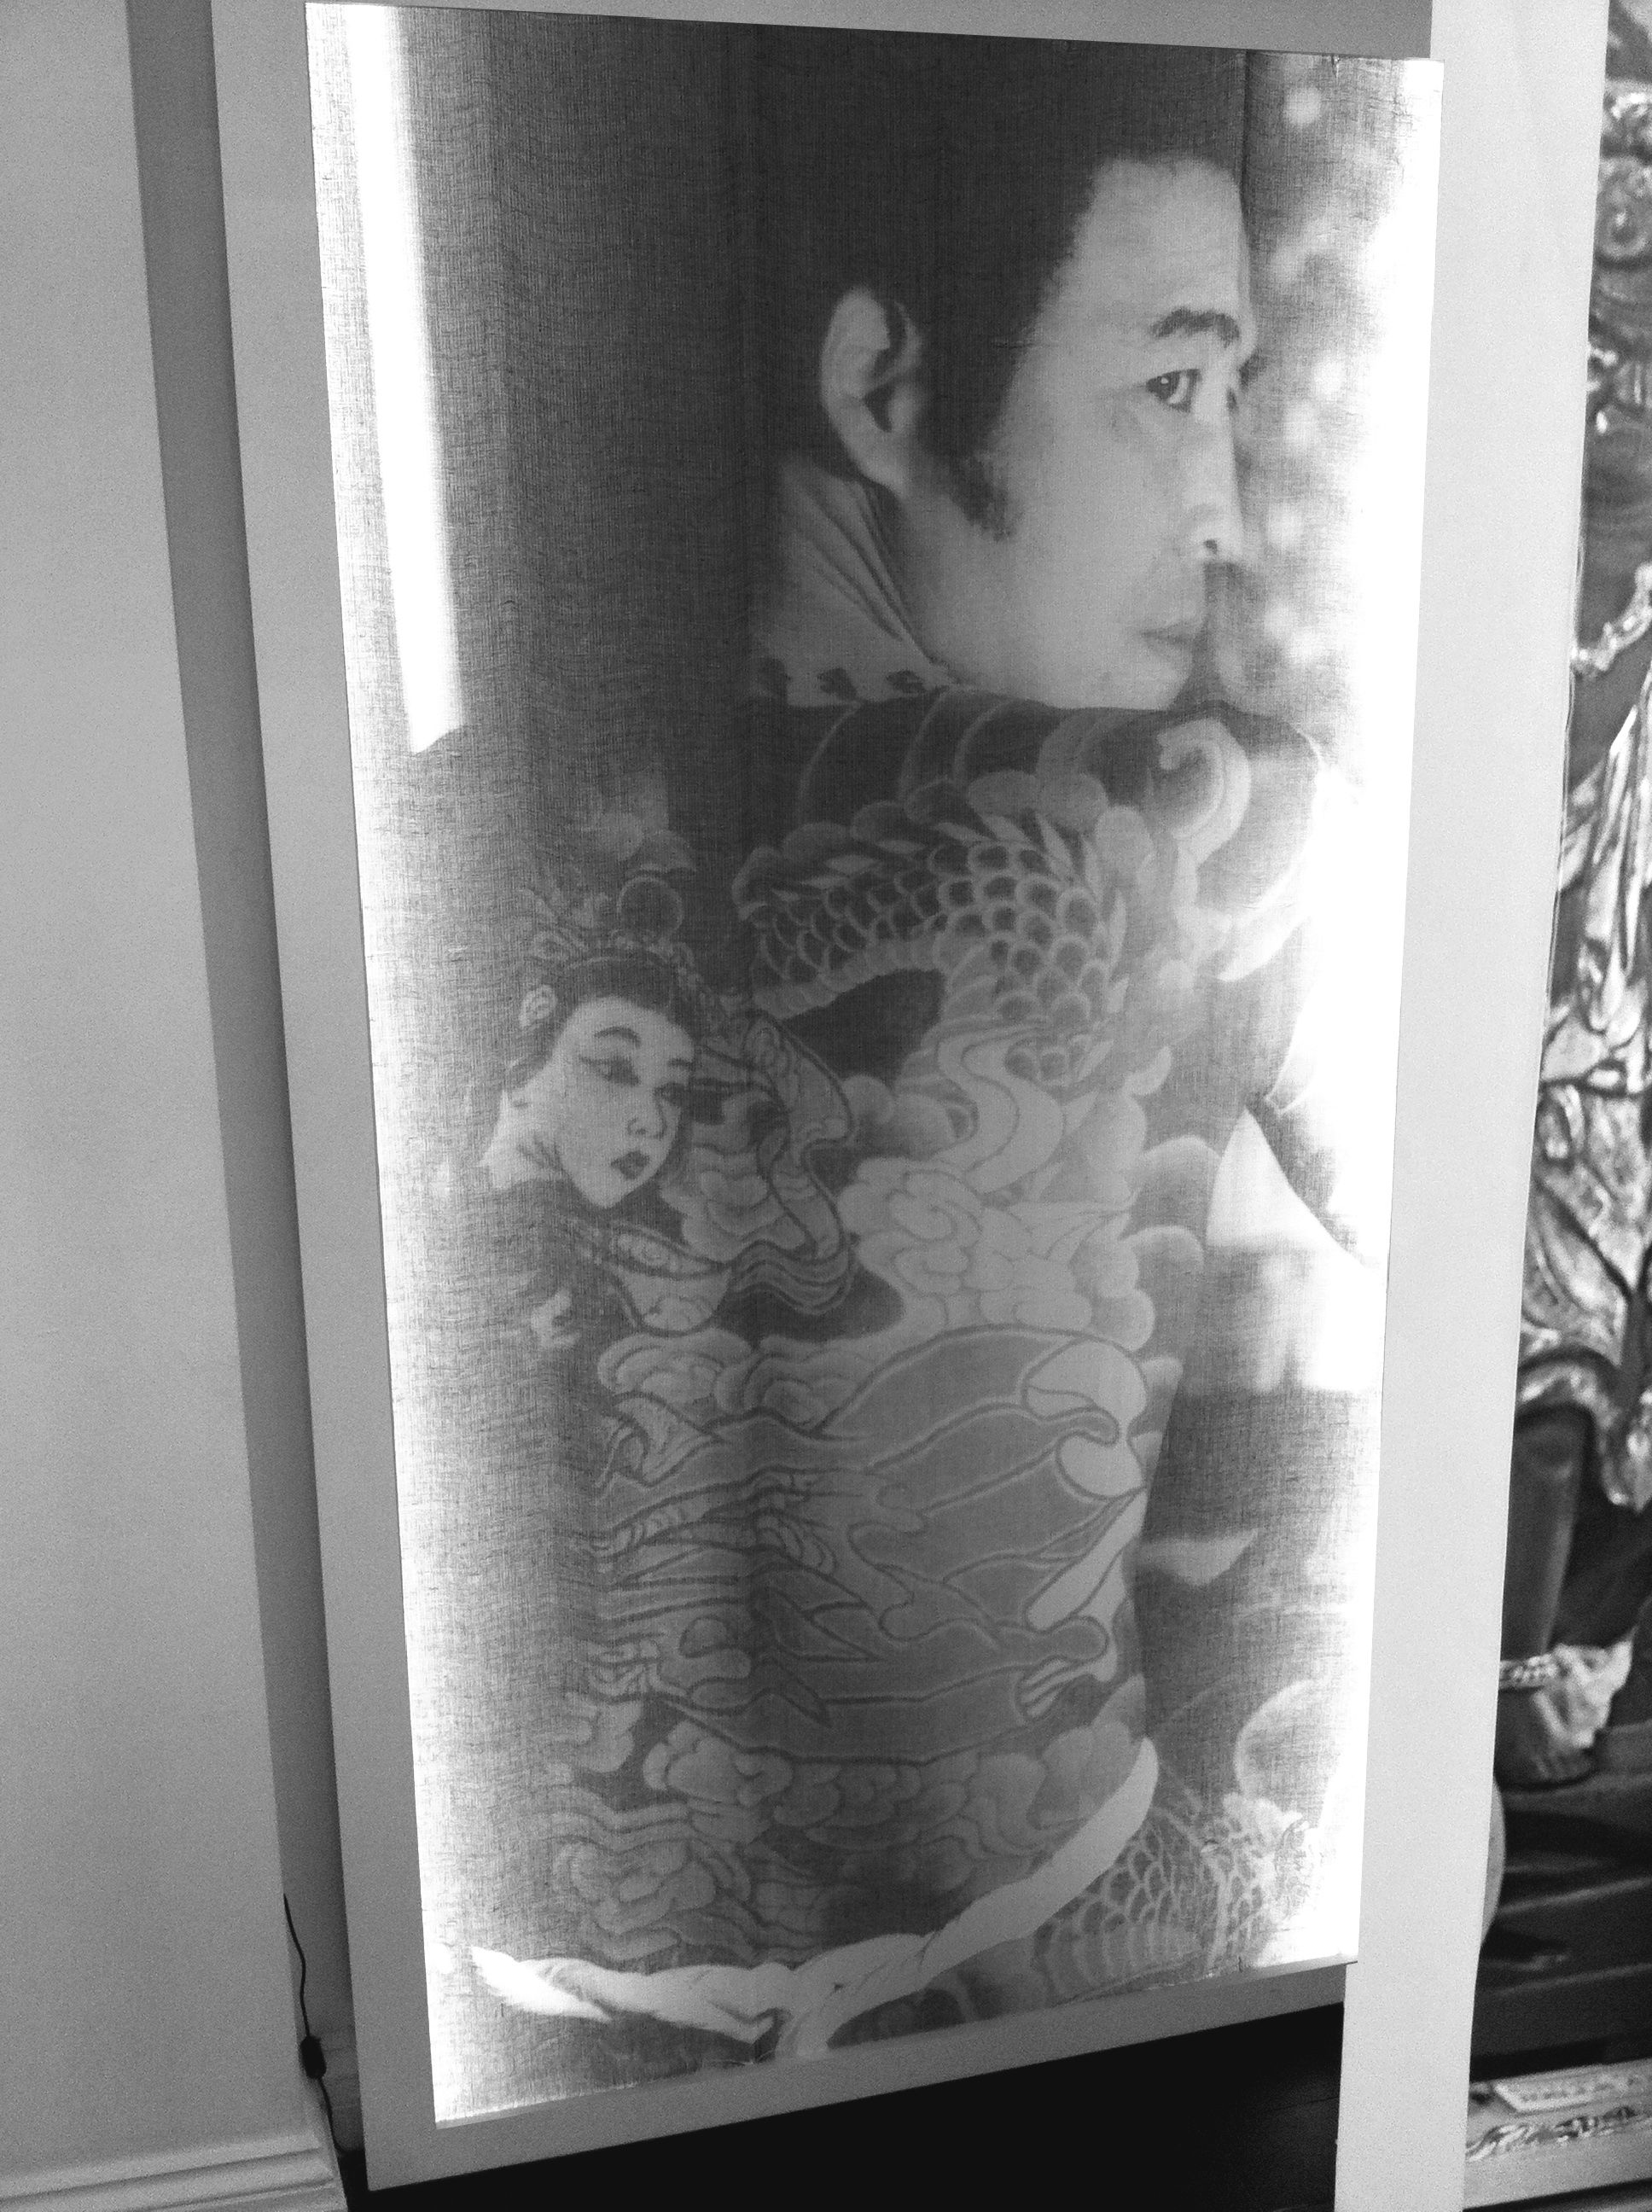 the Young Horiyoshi The Third Scarf in our light box